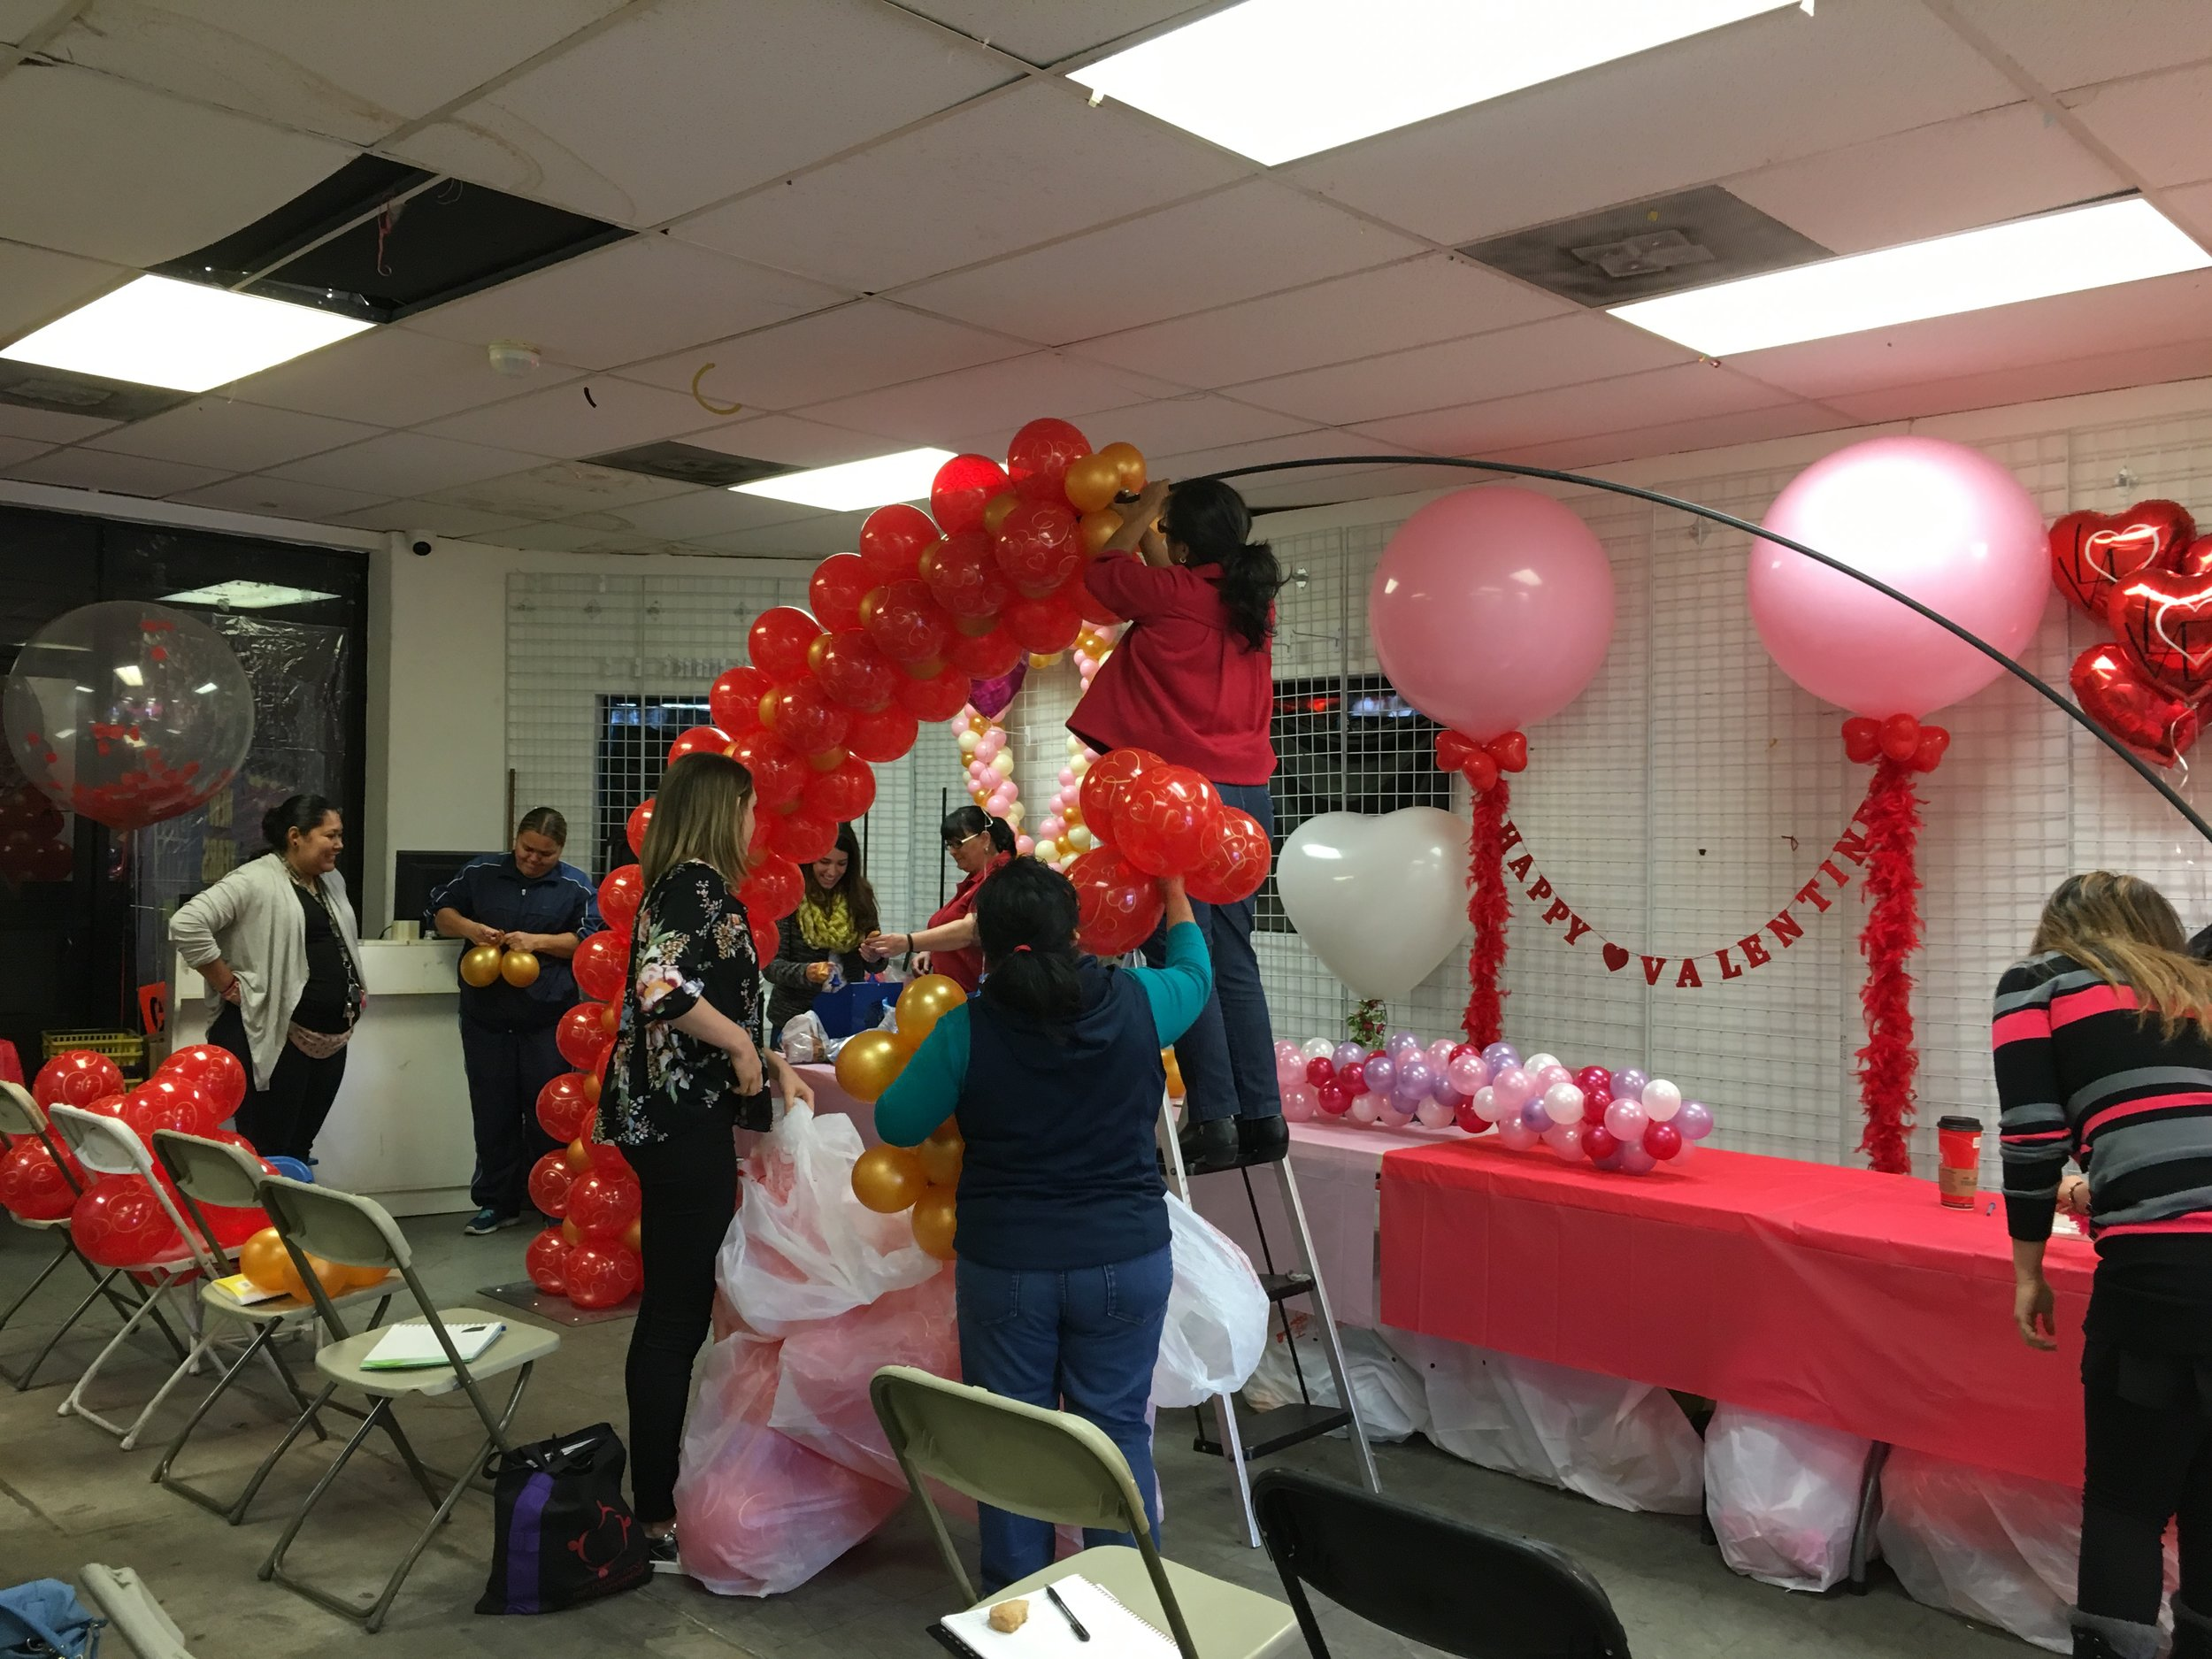 Teaching some students at Joker Party Supply in LA how to make this beautiful Balloon Arch